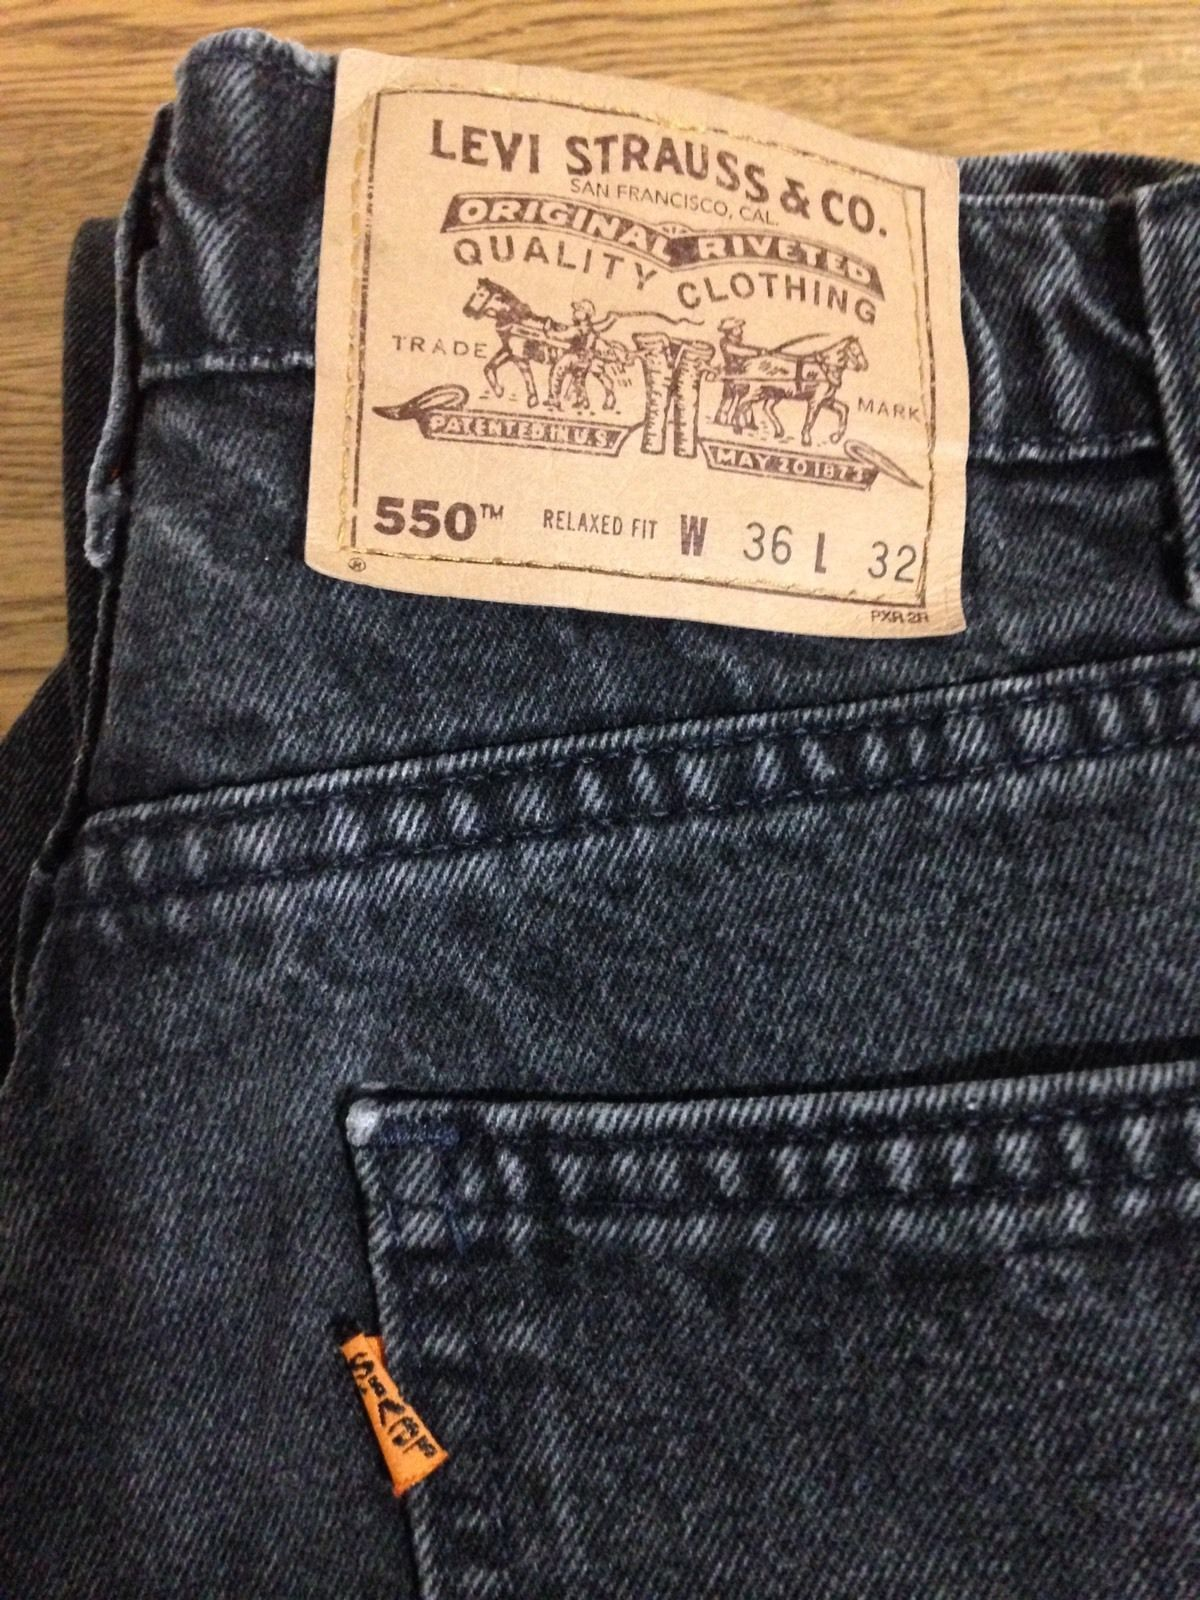 4dd1f21031d Men's vintage Levis 550 orange tab black jeans. Relaxed fit, straight leg,  made in USA. Tag size is 36 x 32, actual measurements are closer to 34 x 32.